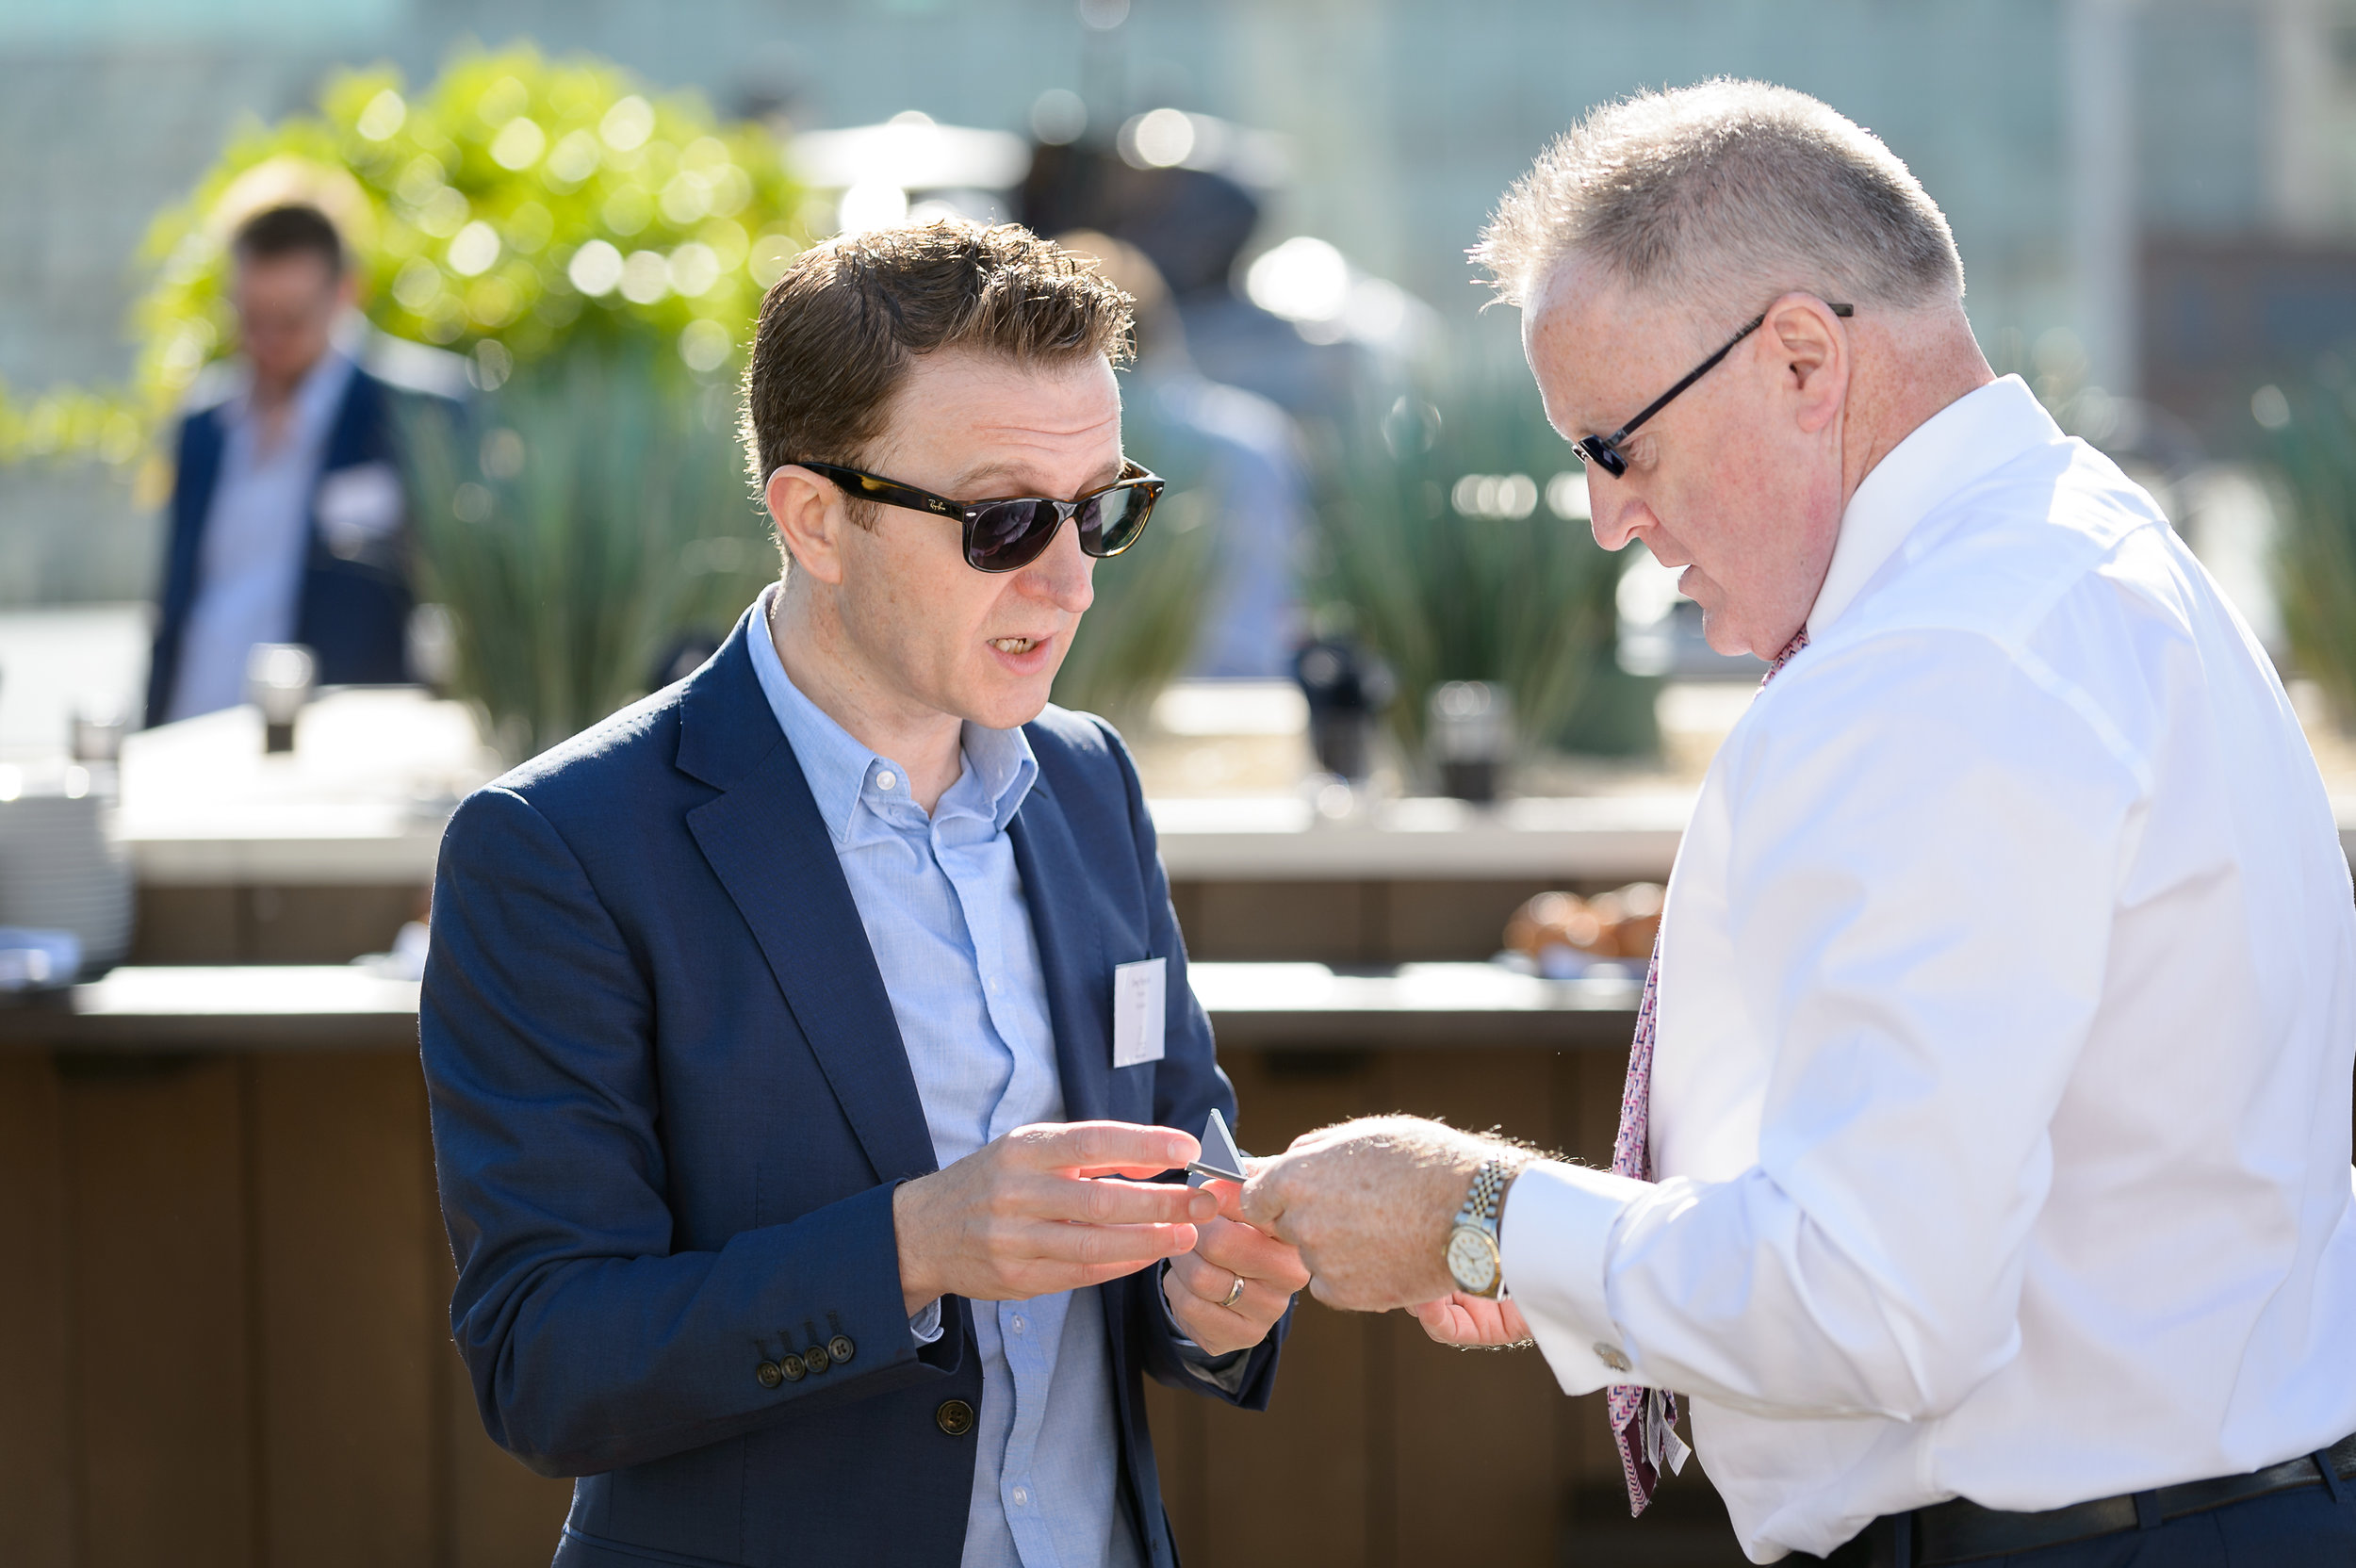 4 TH-2017-06-16-AckroydLowrie-2017-06-16-AckroydLowrie-9121 SWAPPING CARDS RAY.jpg